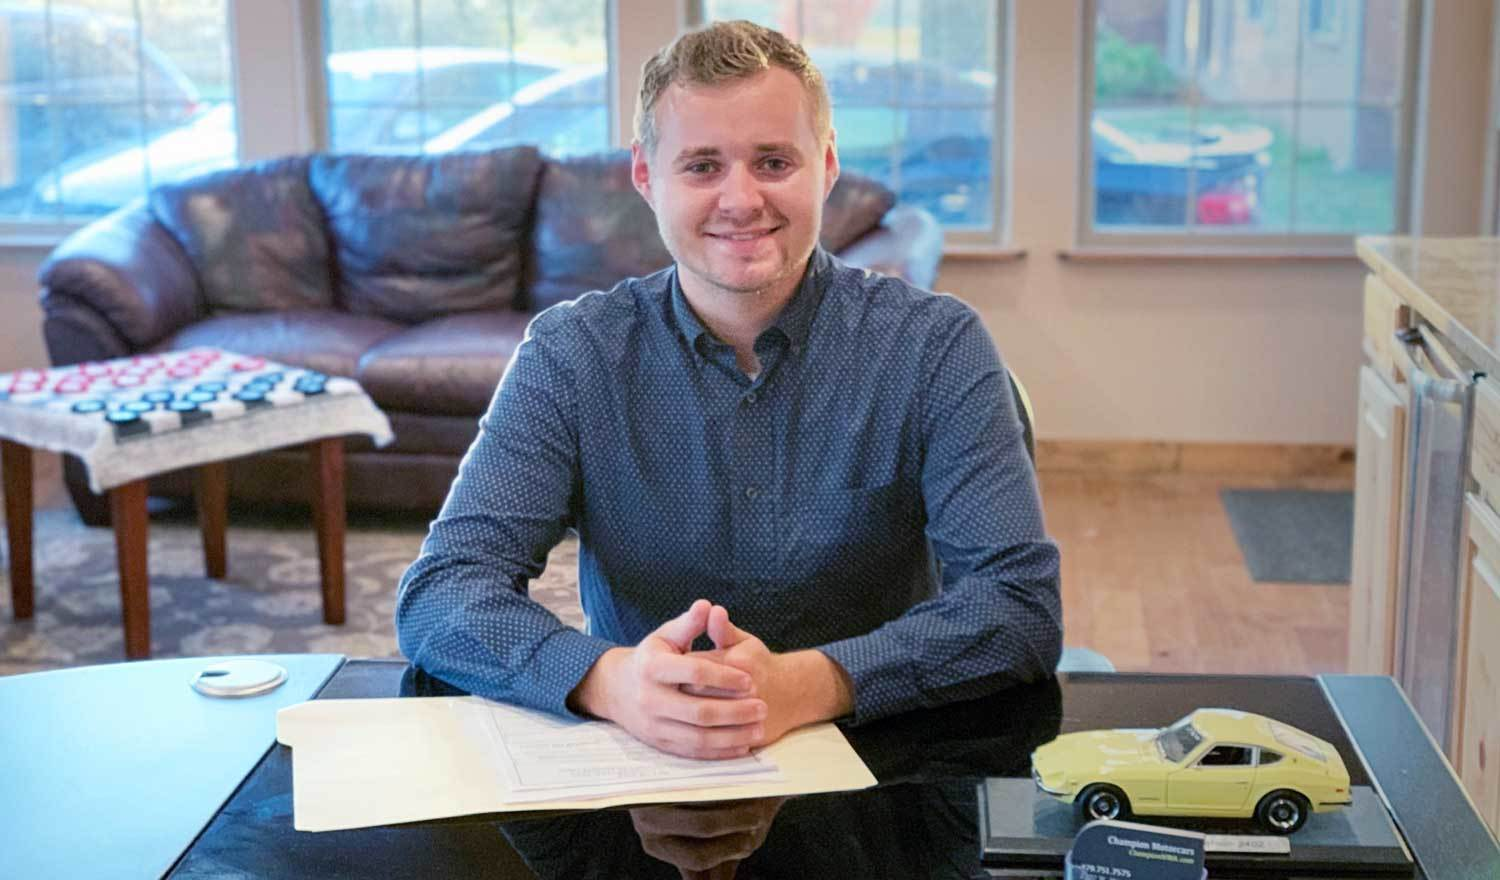 '19 Kids and Counting' star Jed Duggar runs for office in Arkansas, vows to defend religious liberty